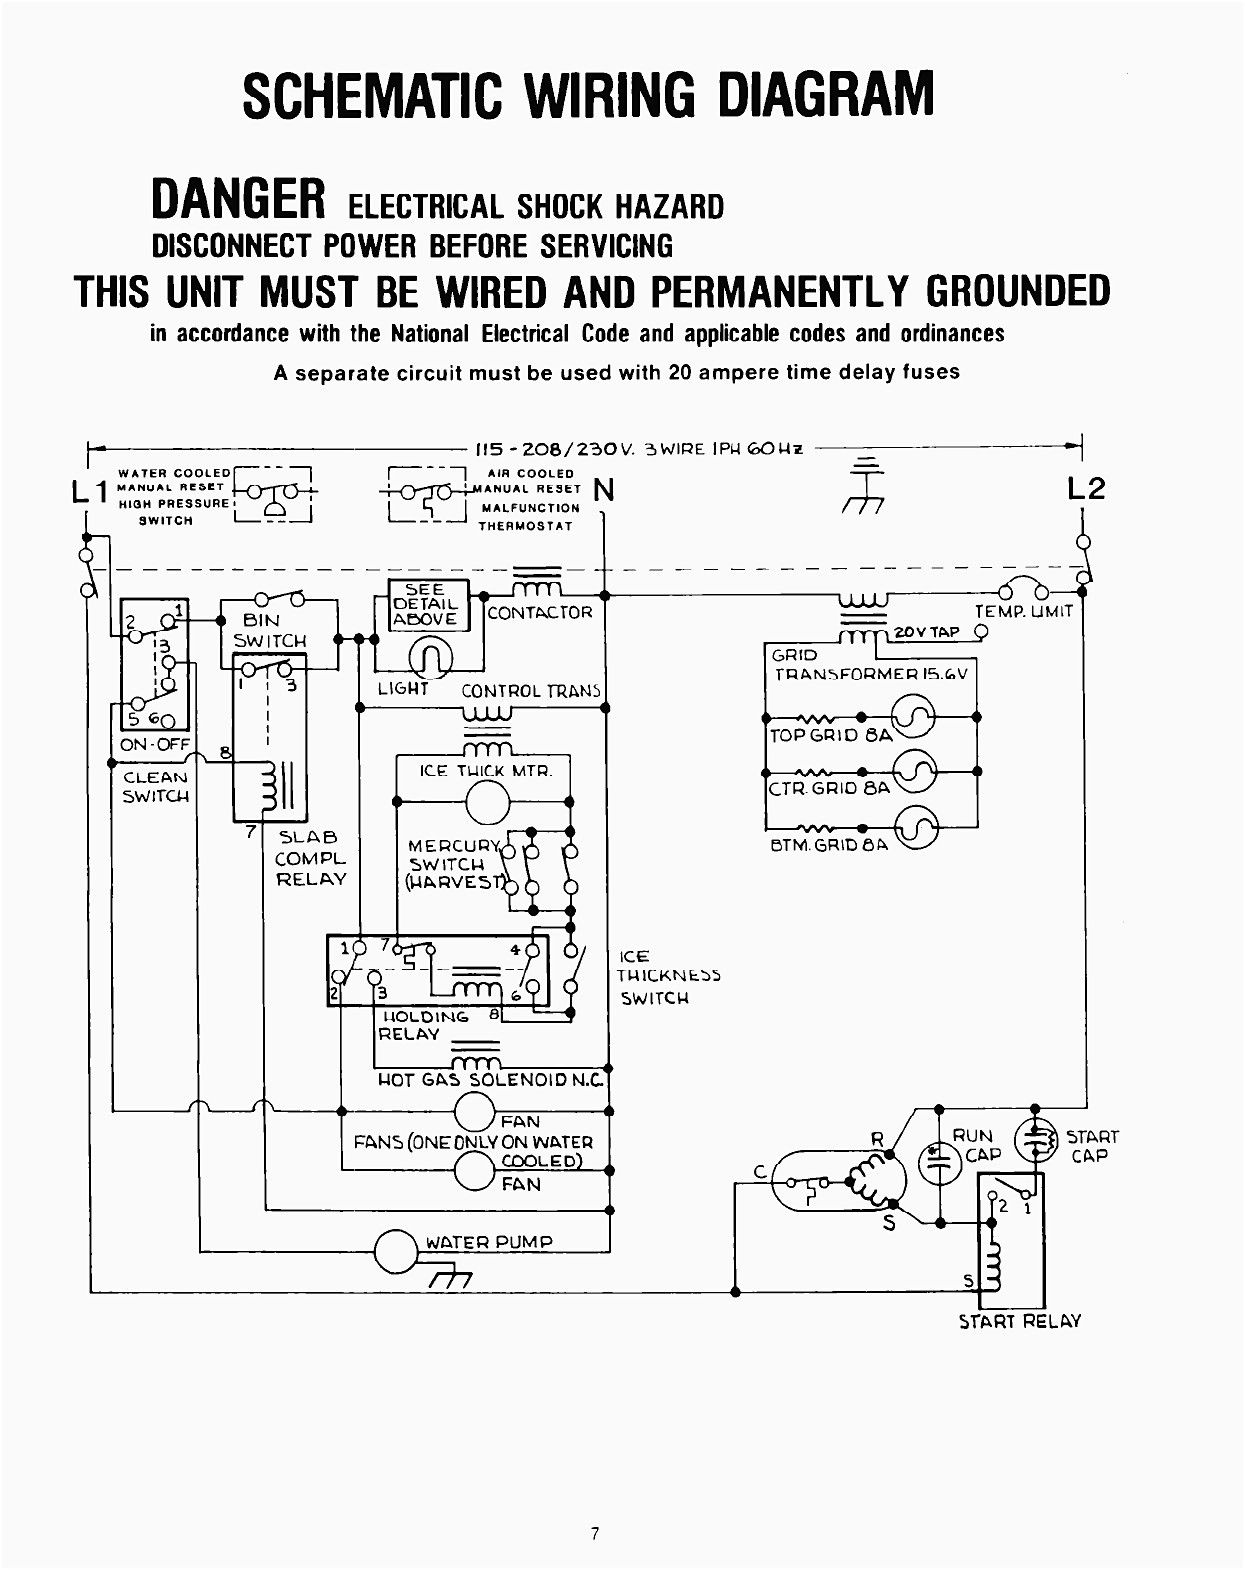 Unique Whirlpool Ice Maker Wiring Diagram in 2020